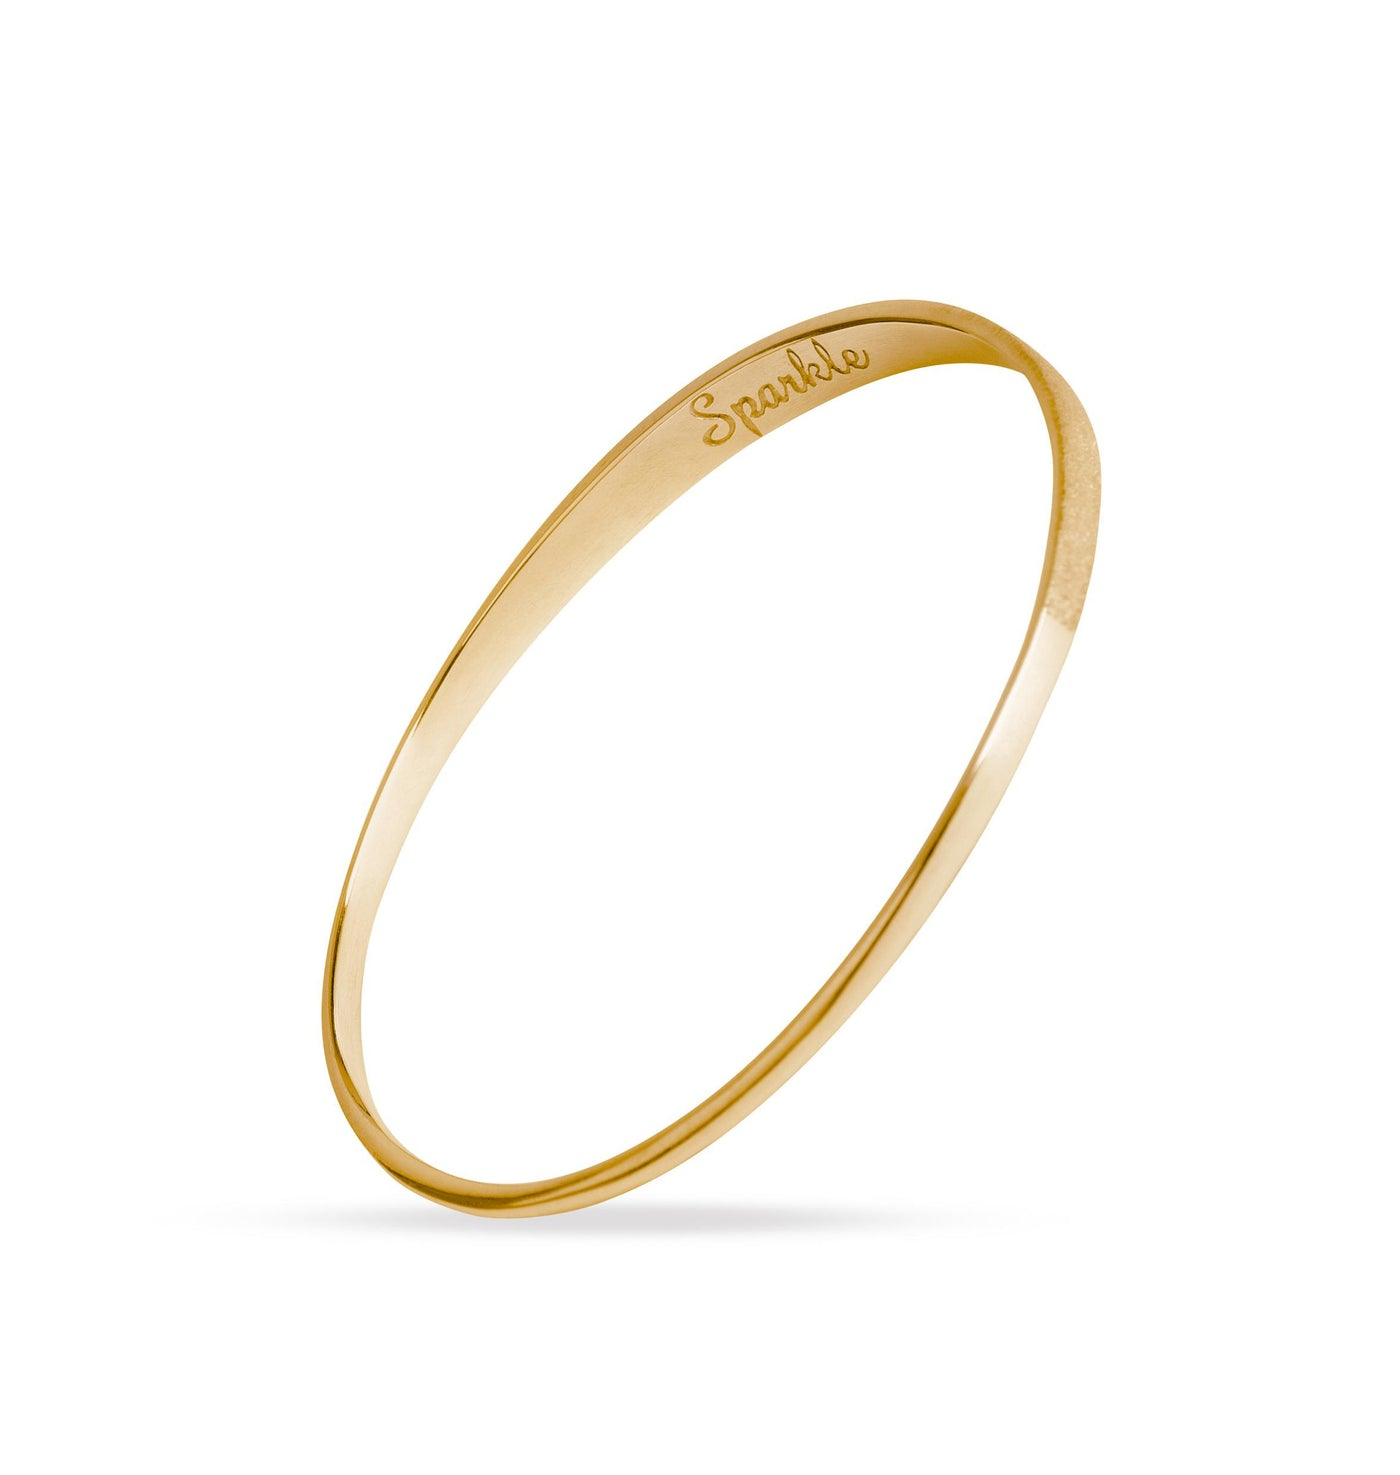 Dream Gold Bangle. Unique designer jewellery handcrafted in Ireland.